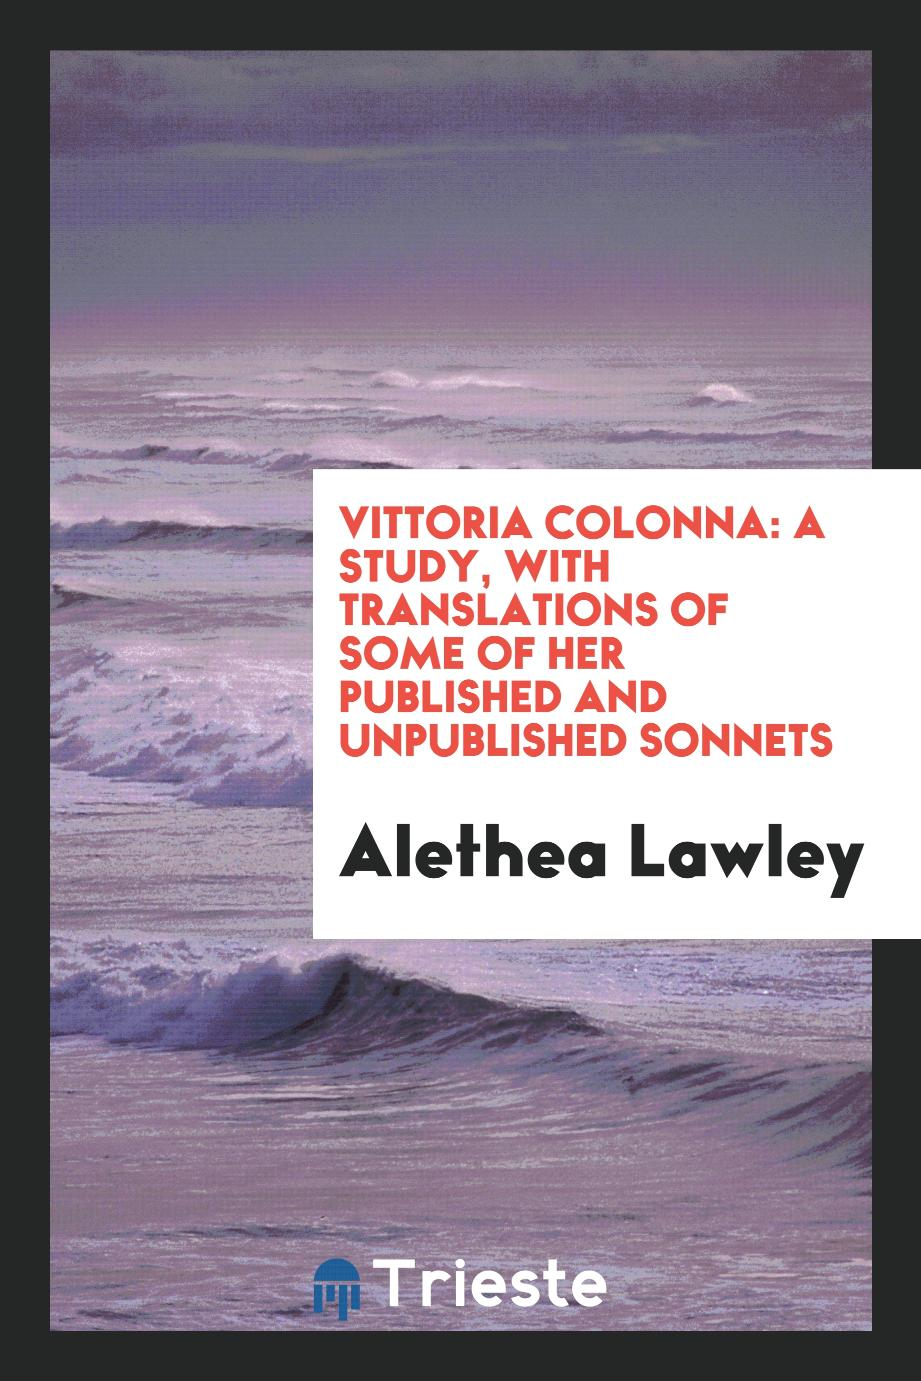 Vittoria Colonna: A Study, with Translations of Some of Her Published and Unpublished Sonnets